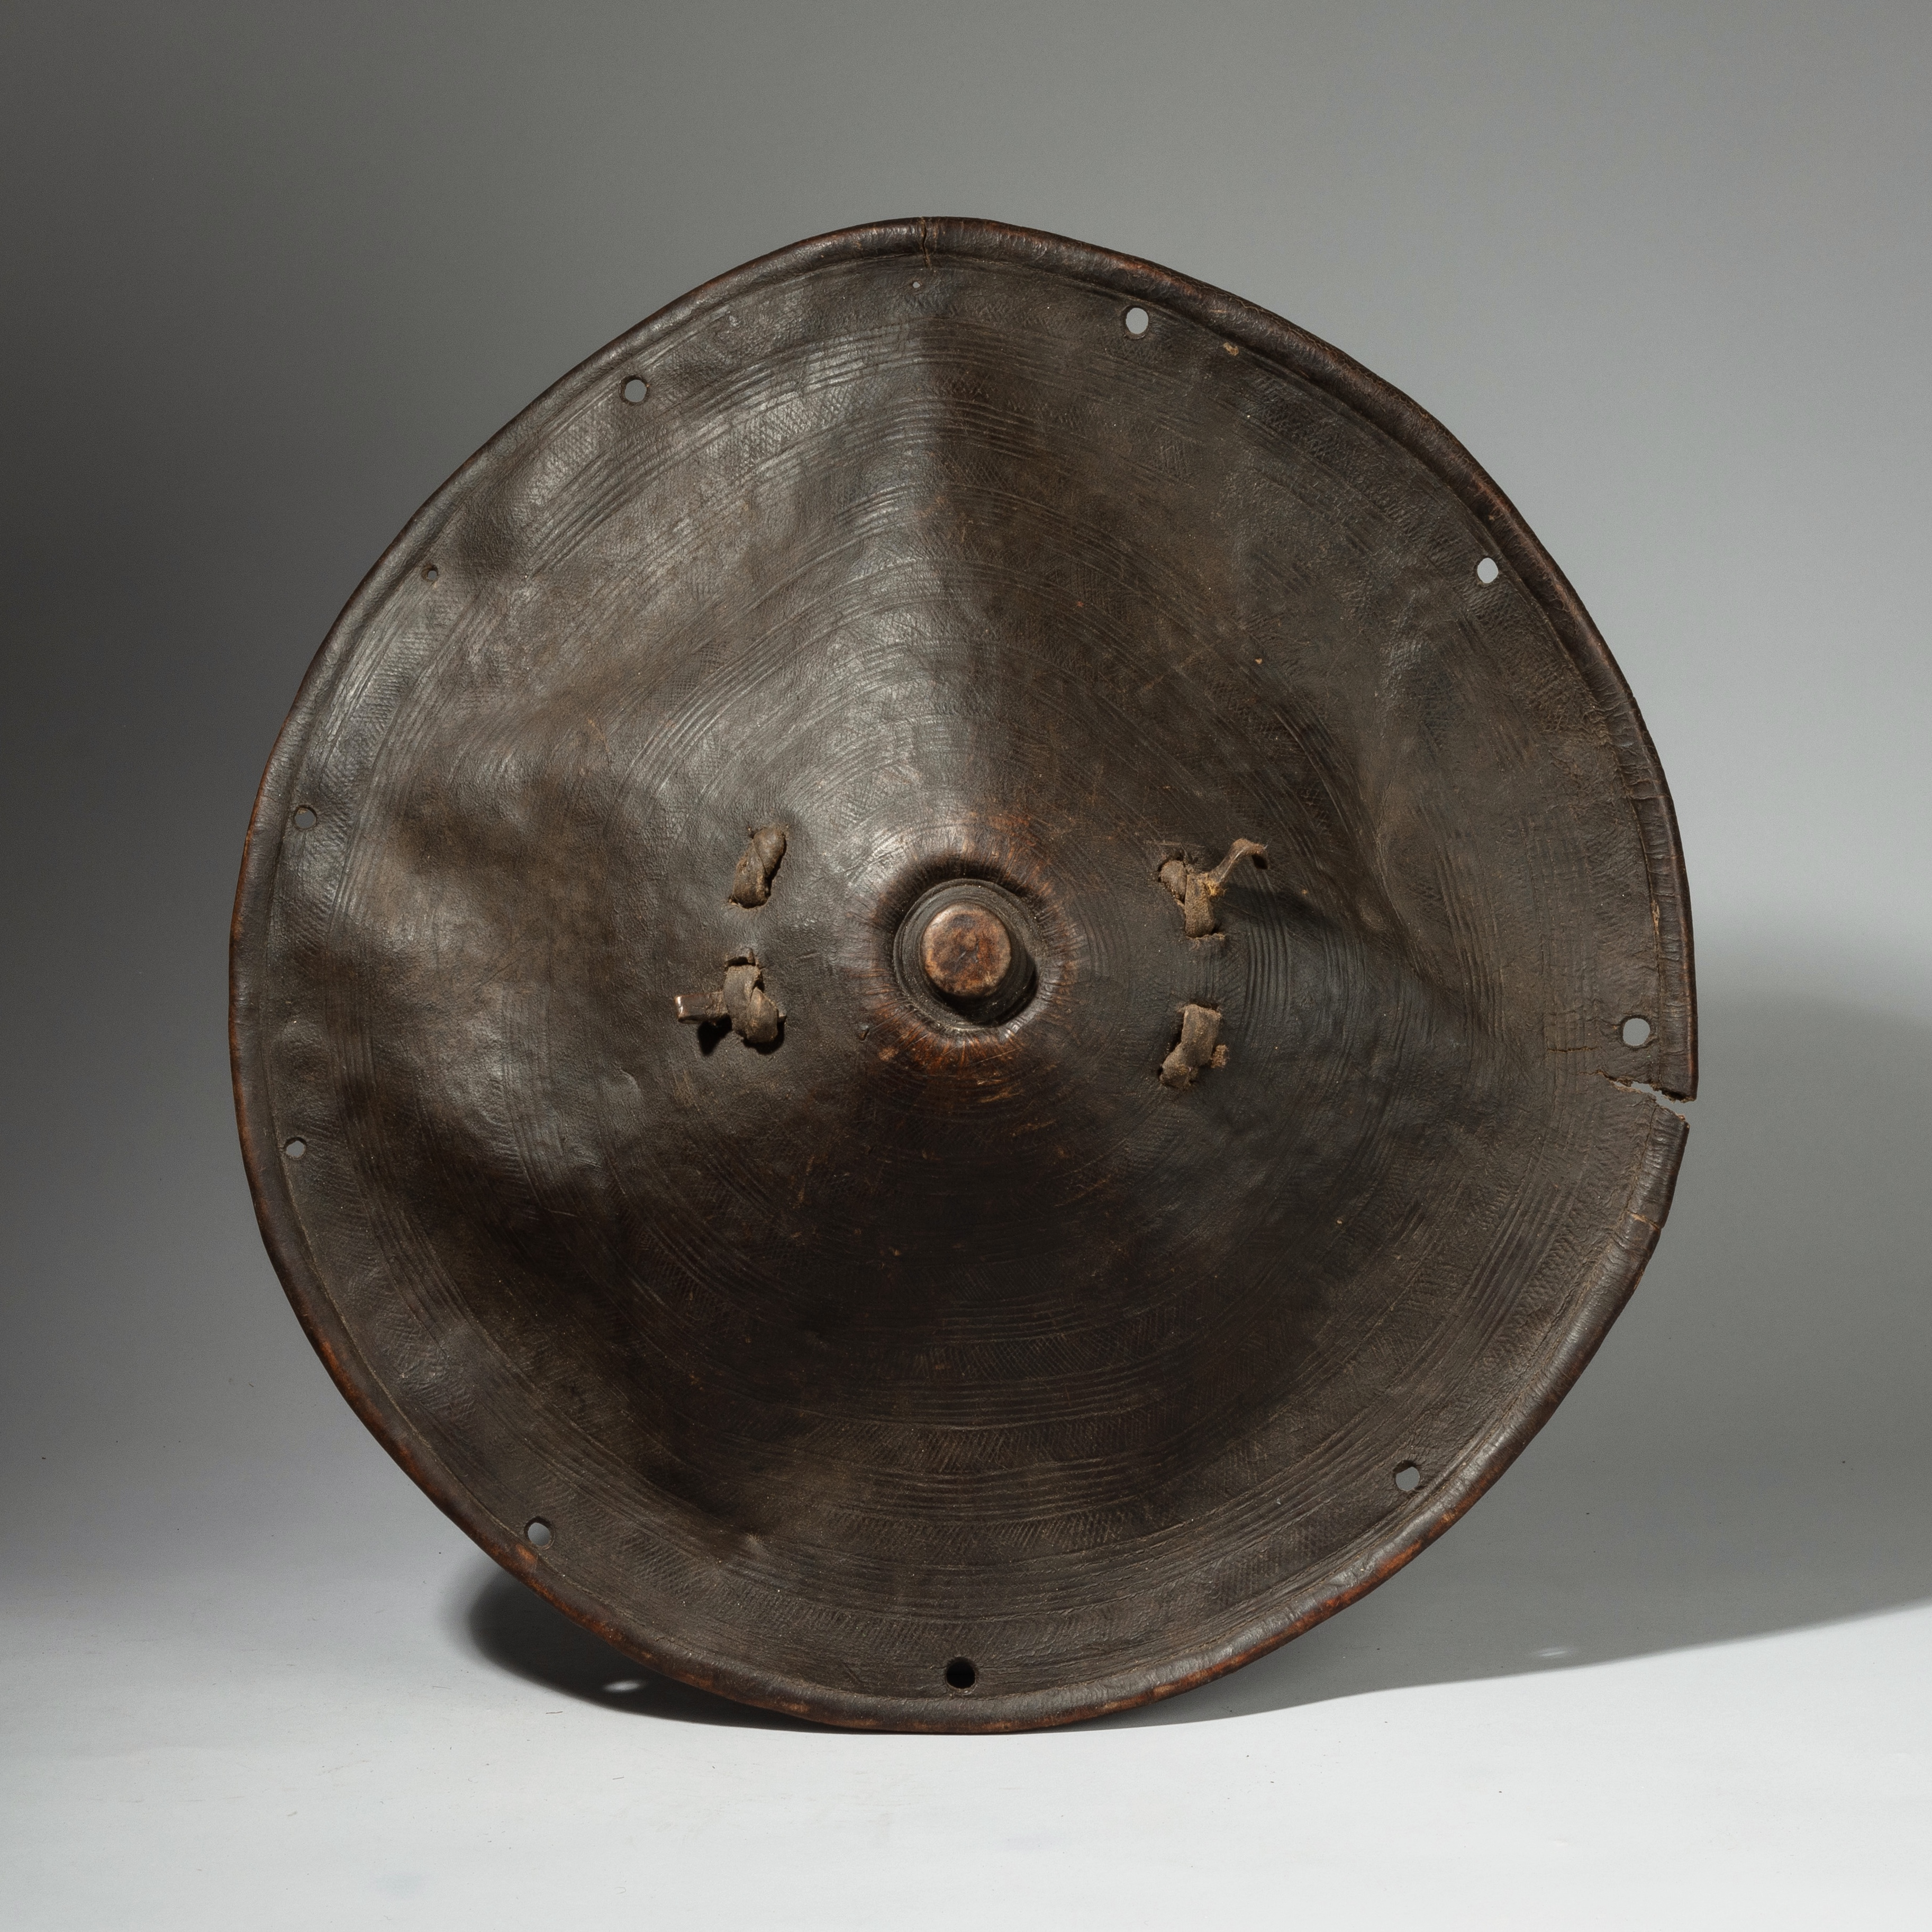 A LARGE ETHIOPIAN SHIELD WITH ORGANIC FORM ( No 4237)